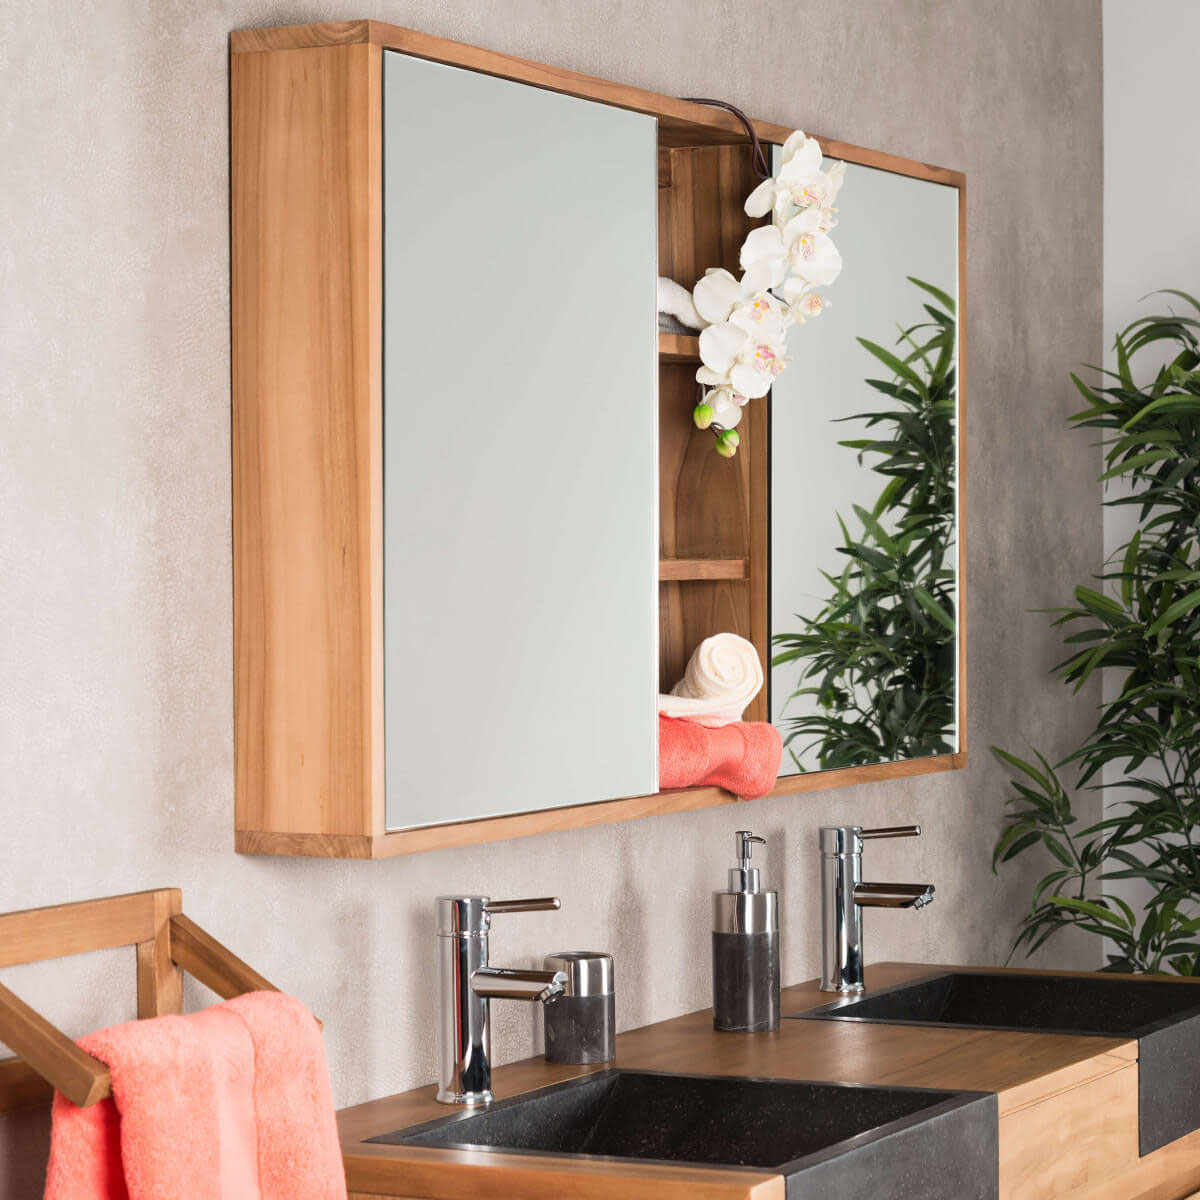 miroir armoire de toilette en bois teck massif rectangulaire naturel l 130 cm. Black Bedroom Furniture Sets. Home Design Ideas